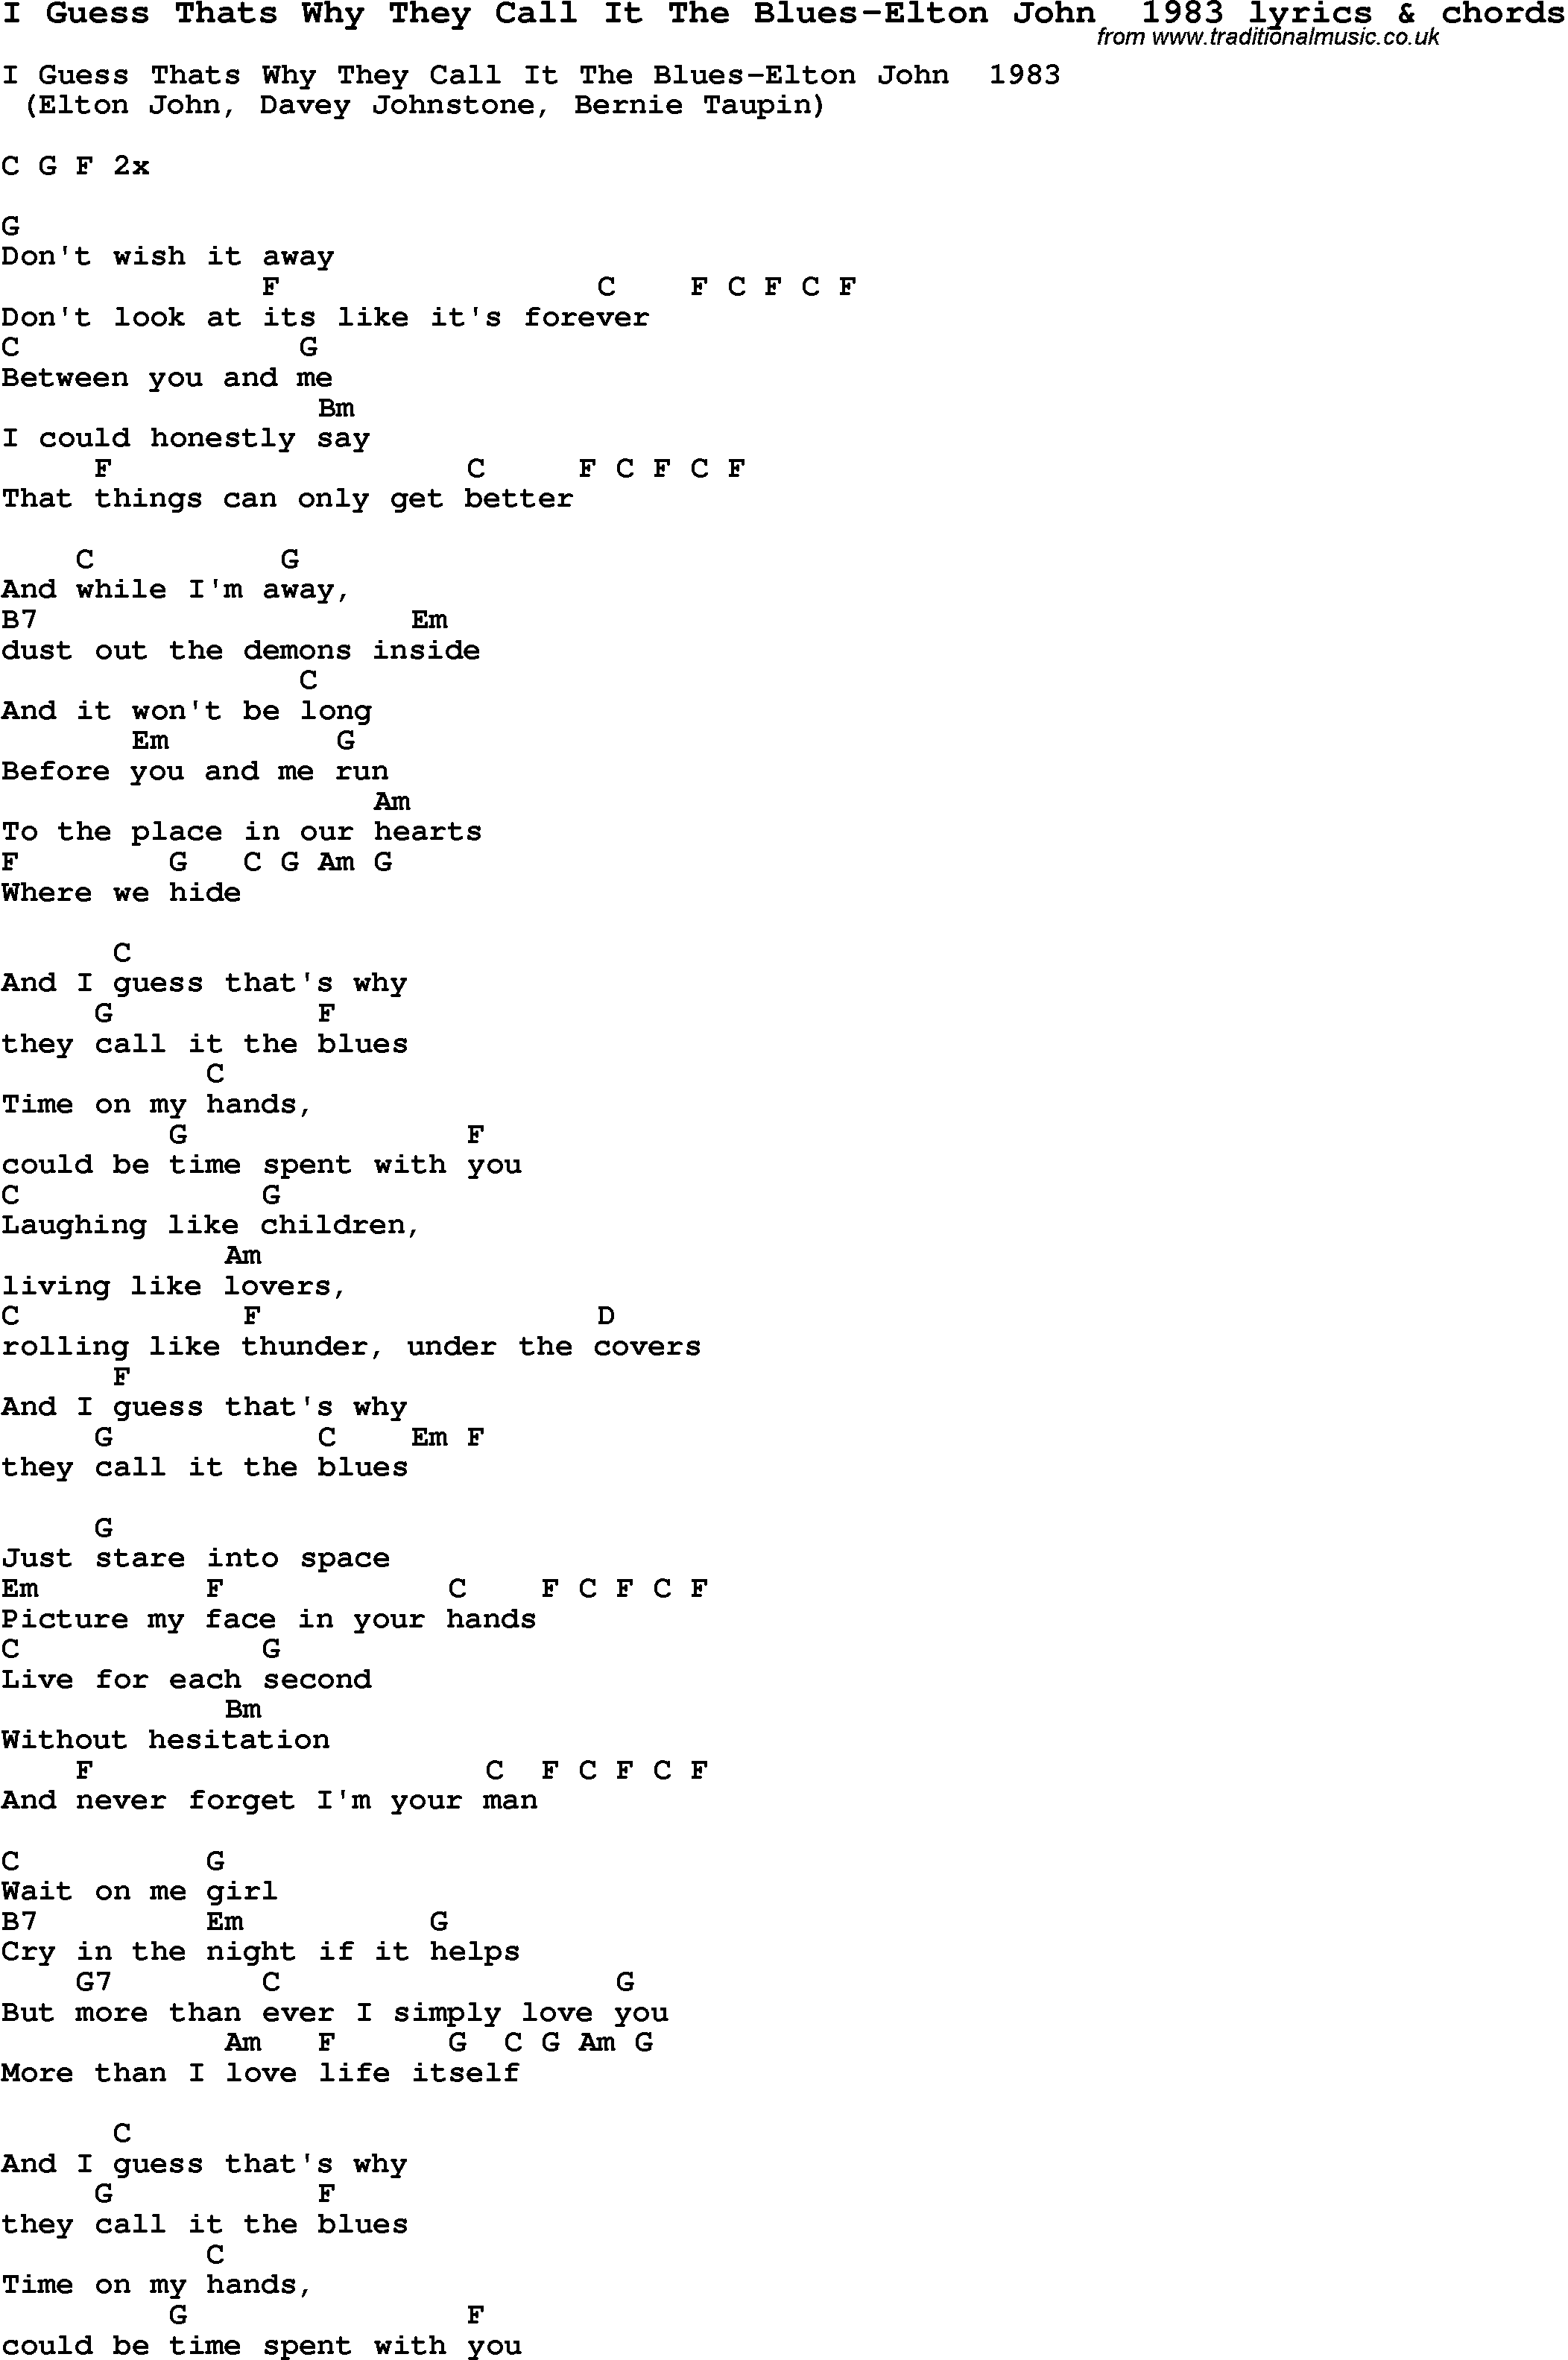 Love Lyrics for:I Guess Thats Why They Call It The Blues-Elton John